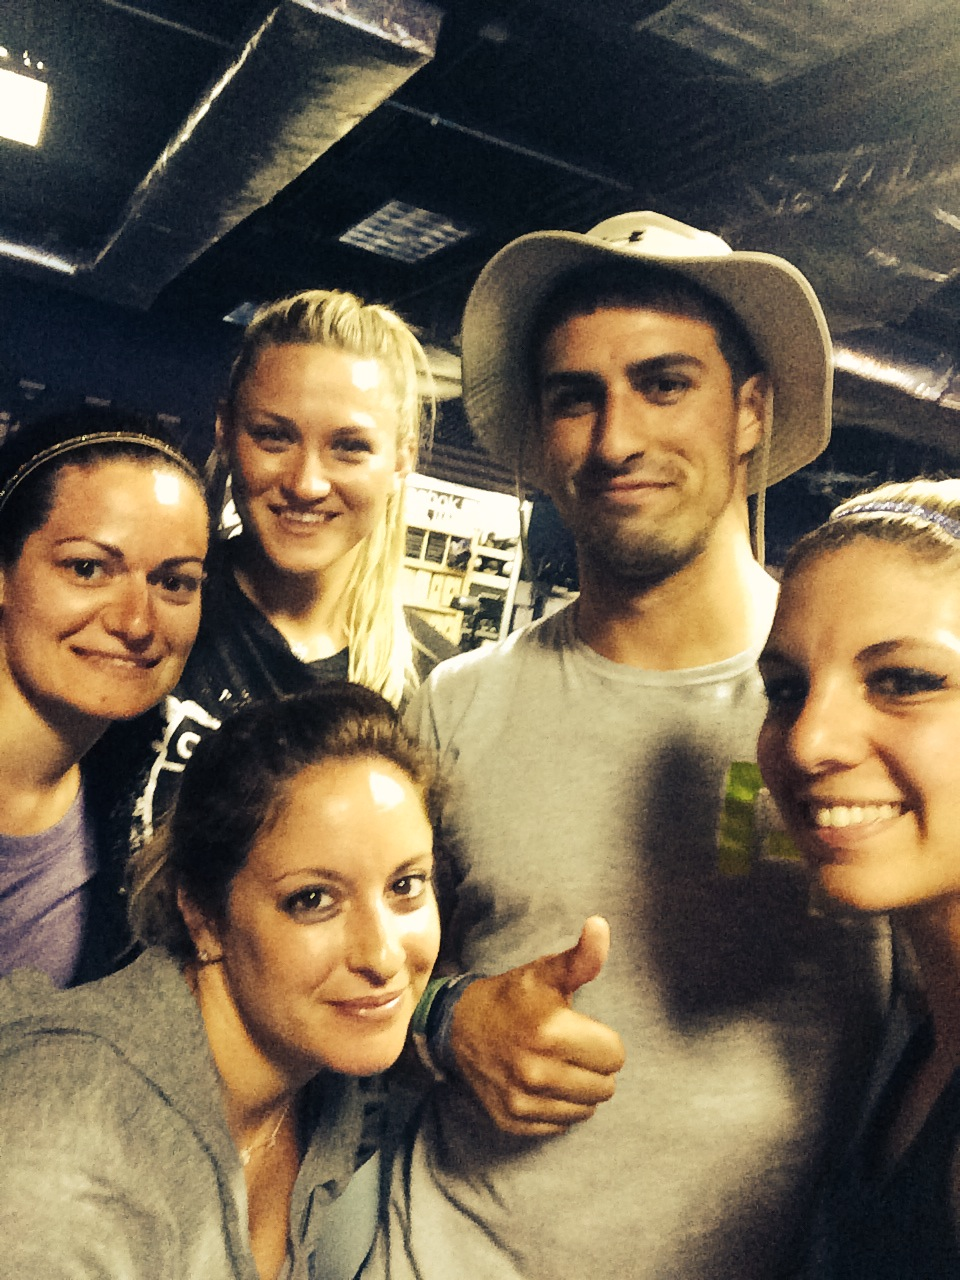 Post Sweaty WOD at Reebok CrossFit Bare Cove